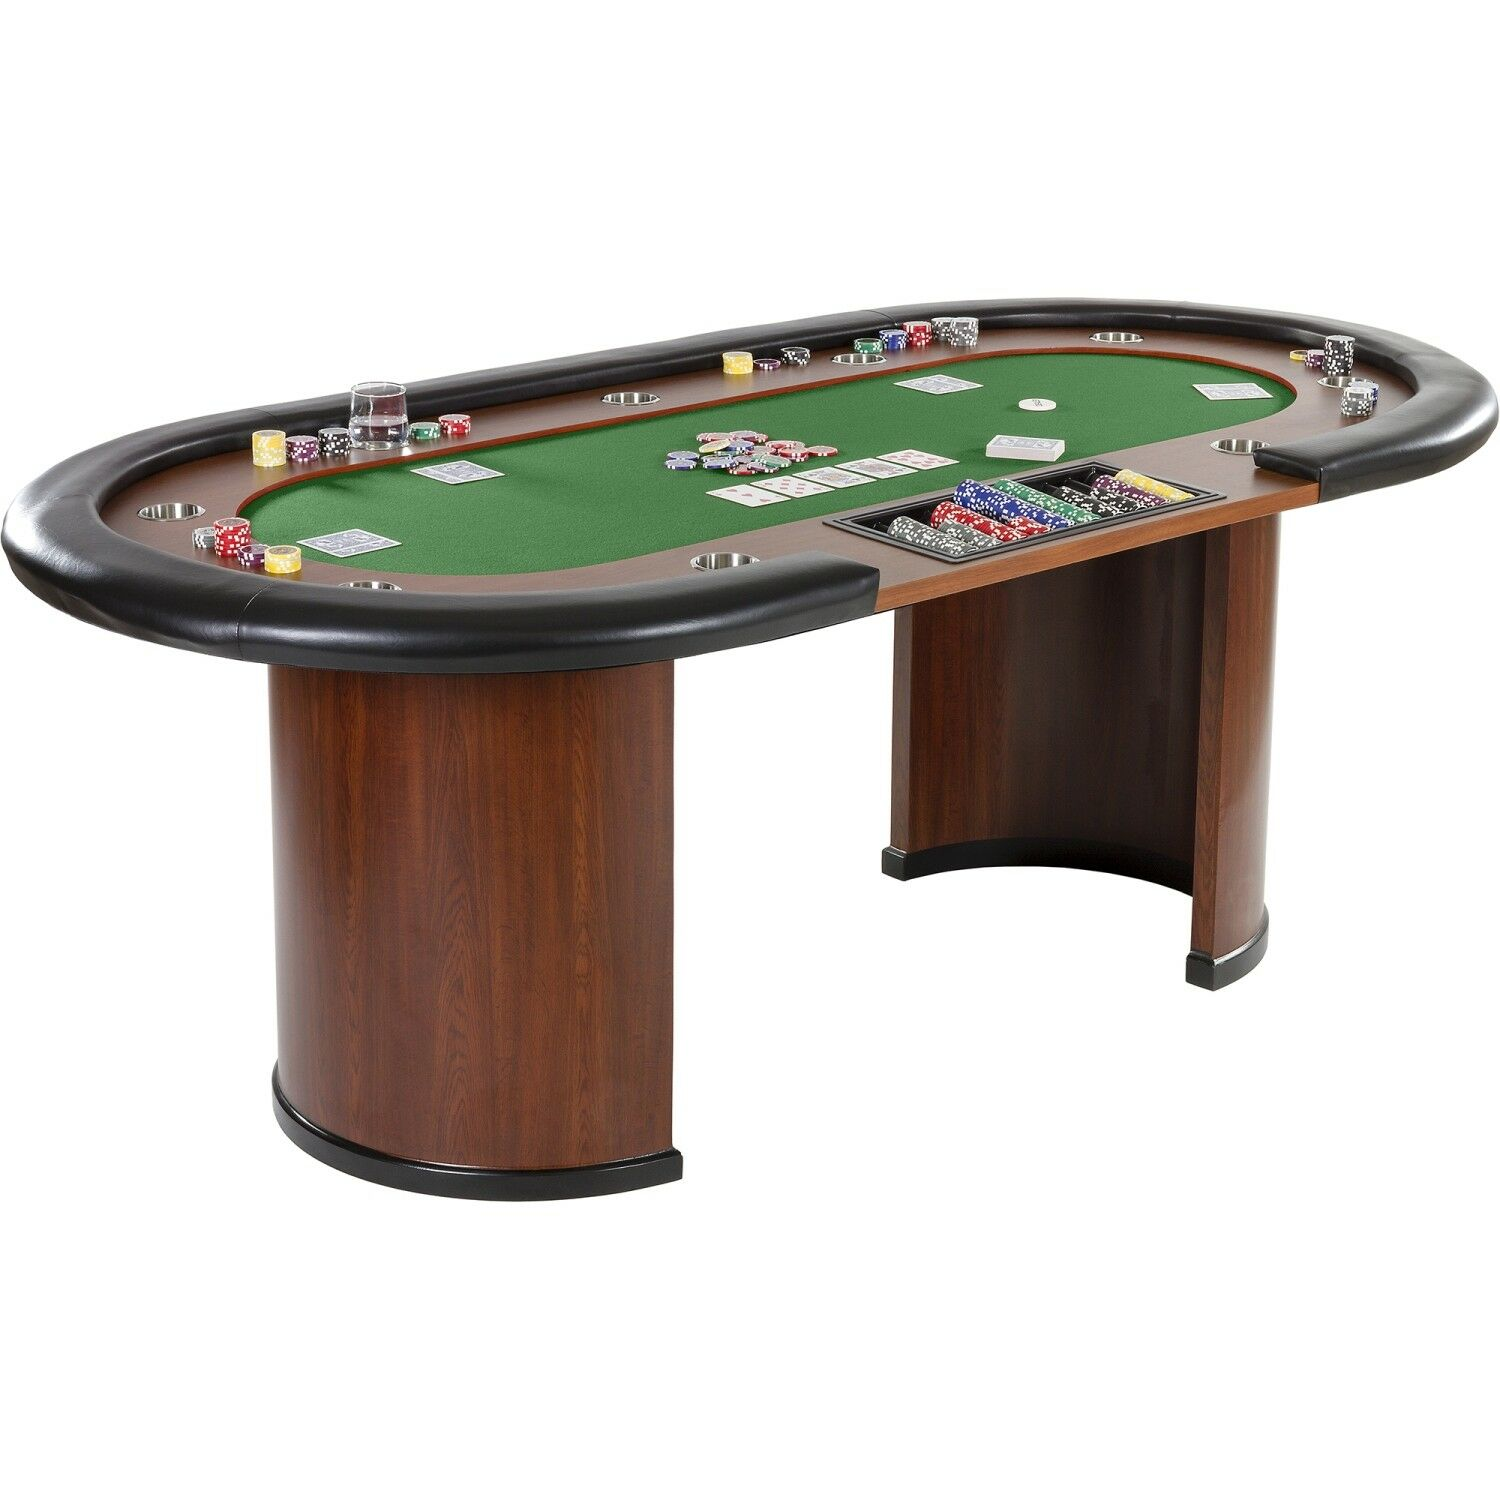 XXL Pokertisch ROYAL FLUSH FLUSH FLUSH Pokertable Casino Poker Tisch Getränkehalter f02e95